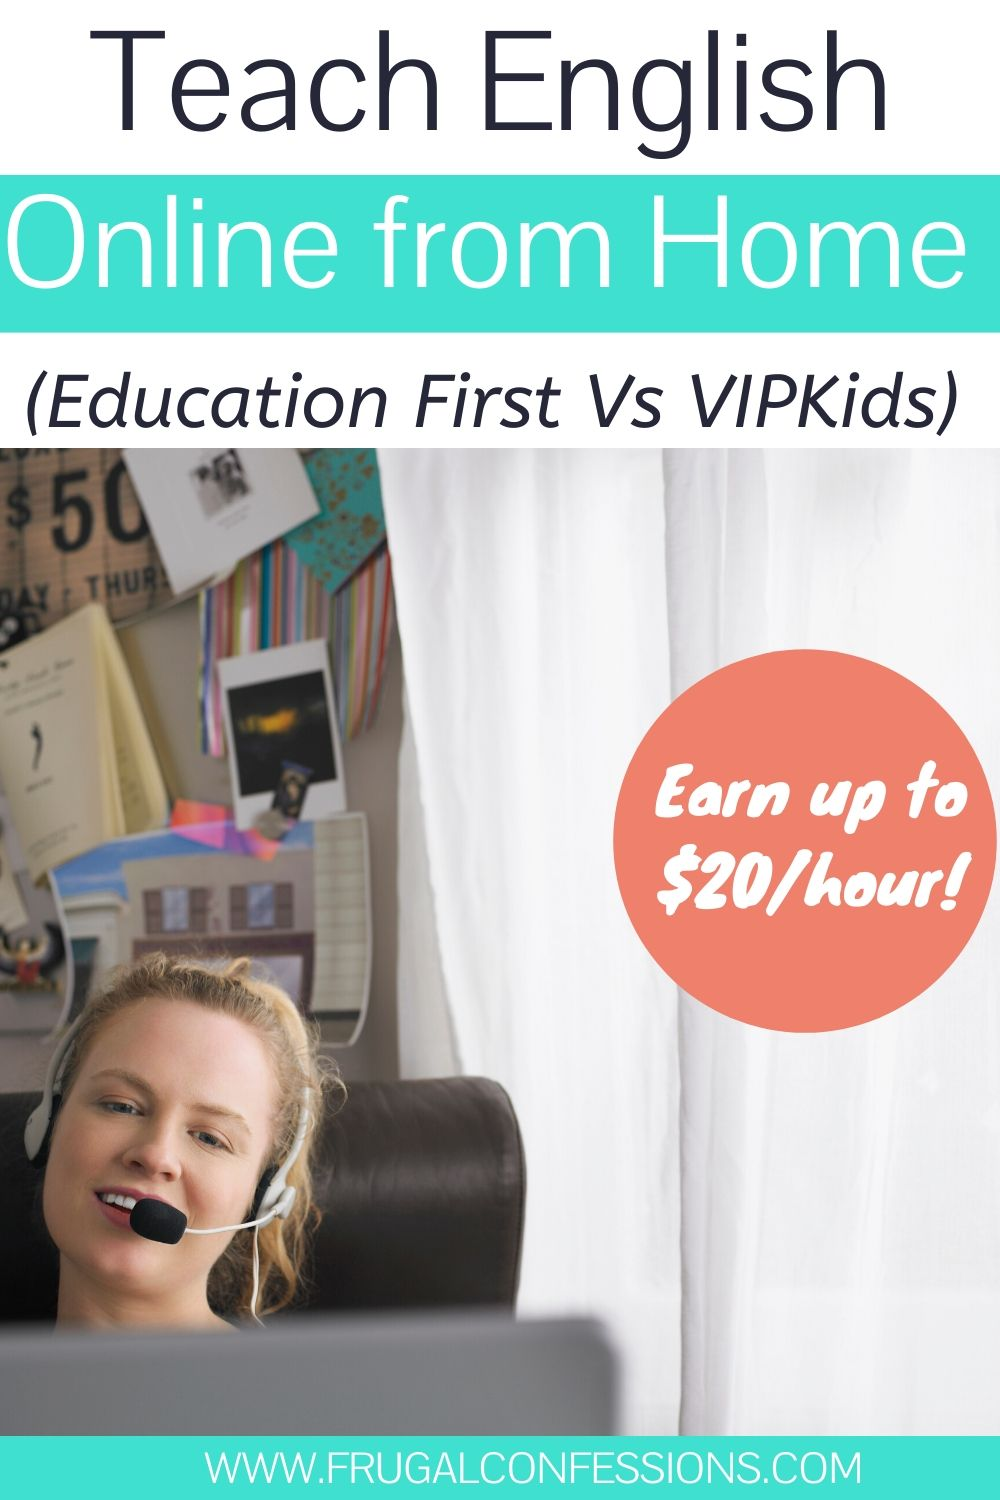 "woman with headset at home office desk teaching english online, text overlay ""teach english online from home education first vs VIPKids)"